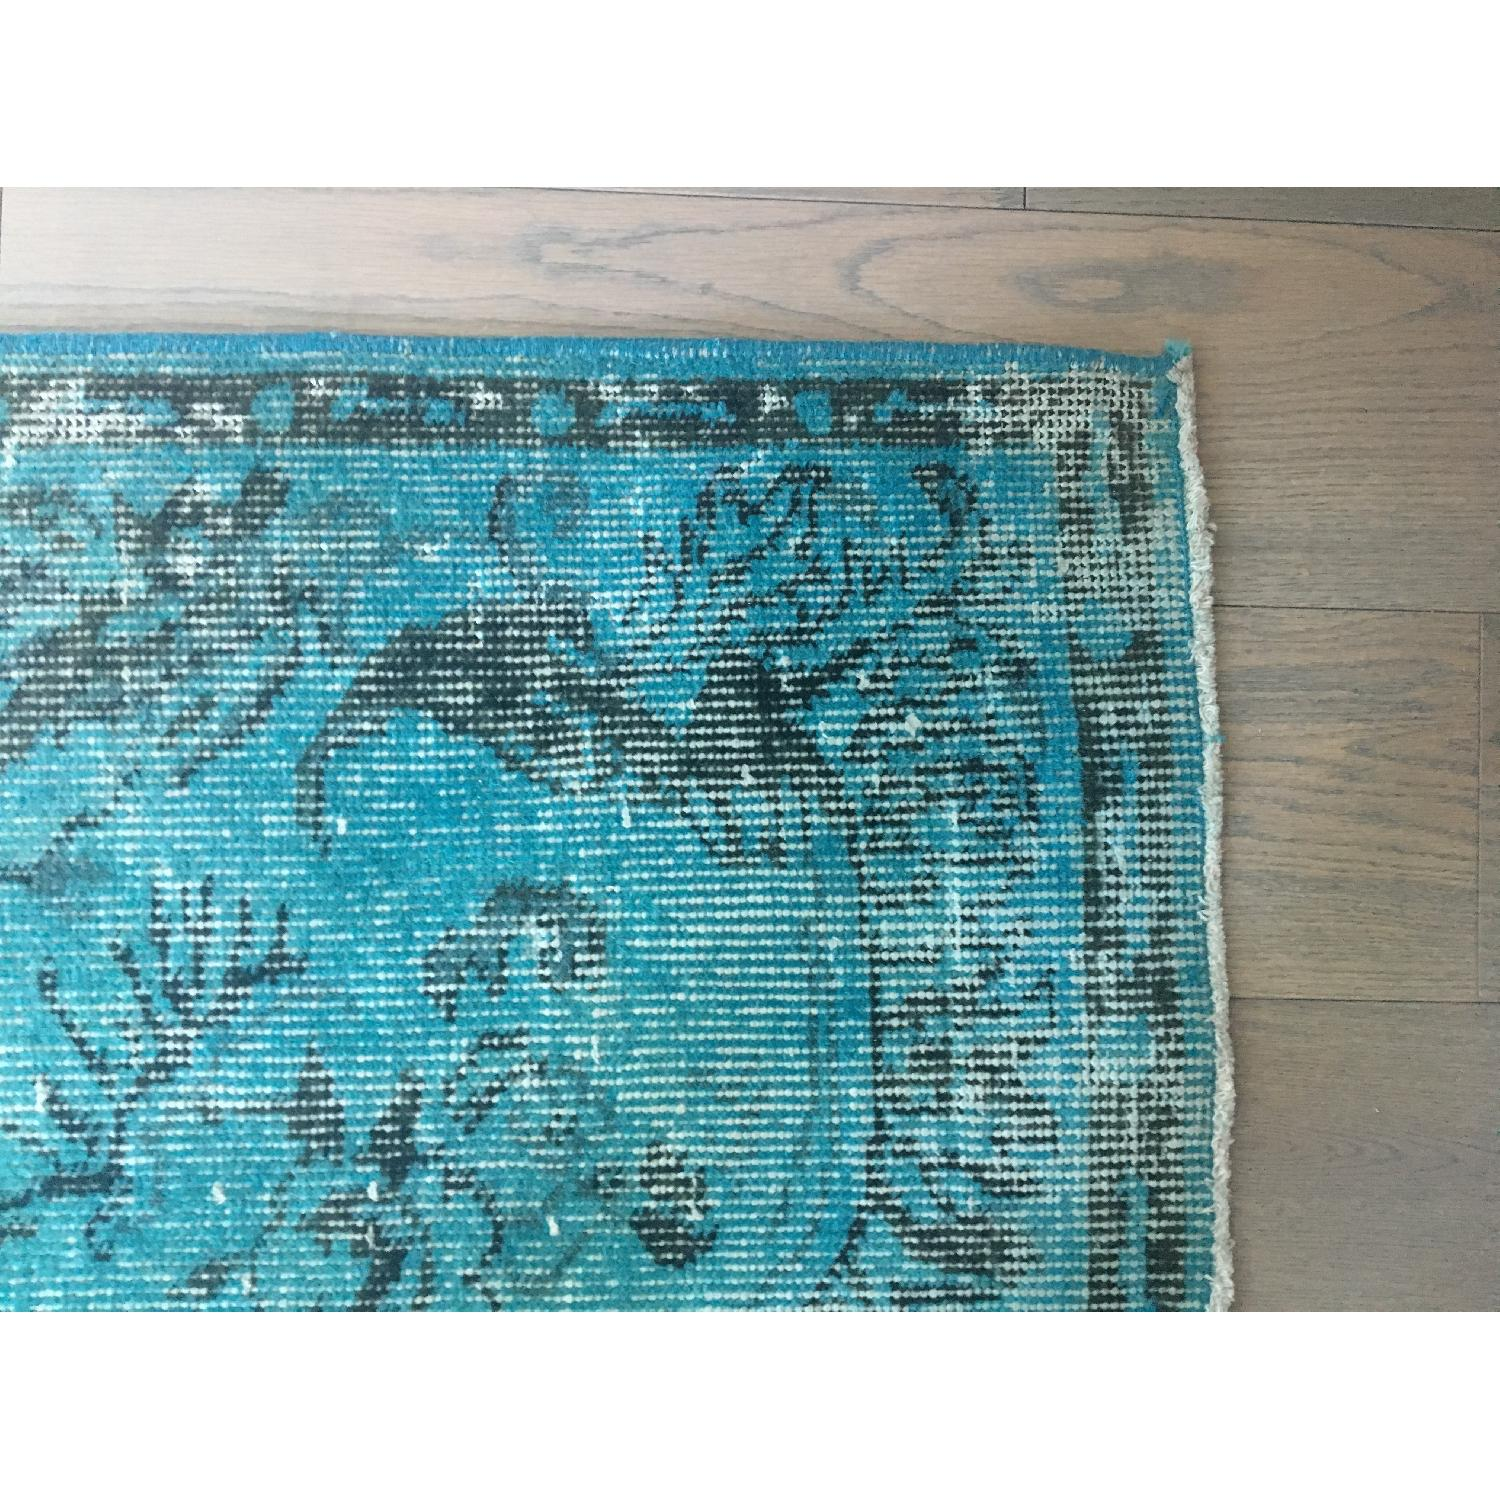 Teal Color Area Rugs Abc Carpet And Home Teal Blue Persian Area Rug